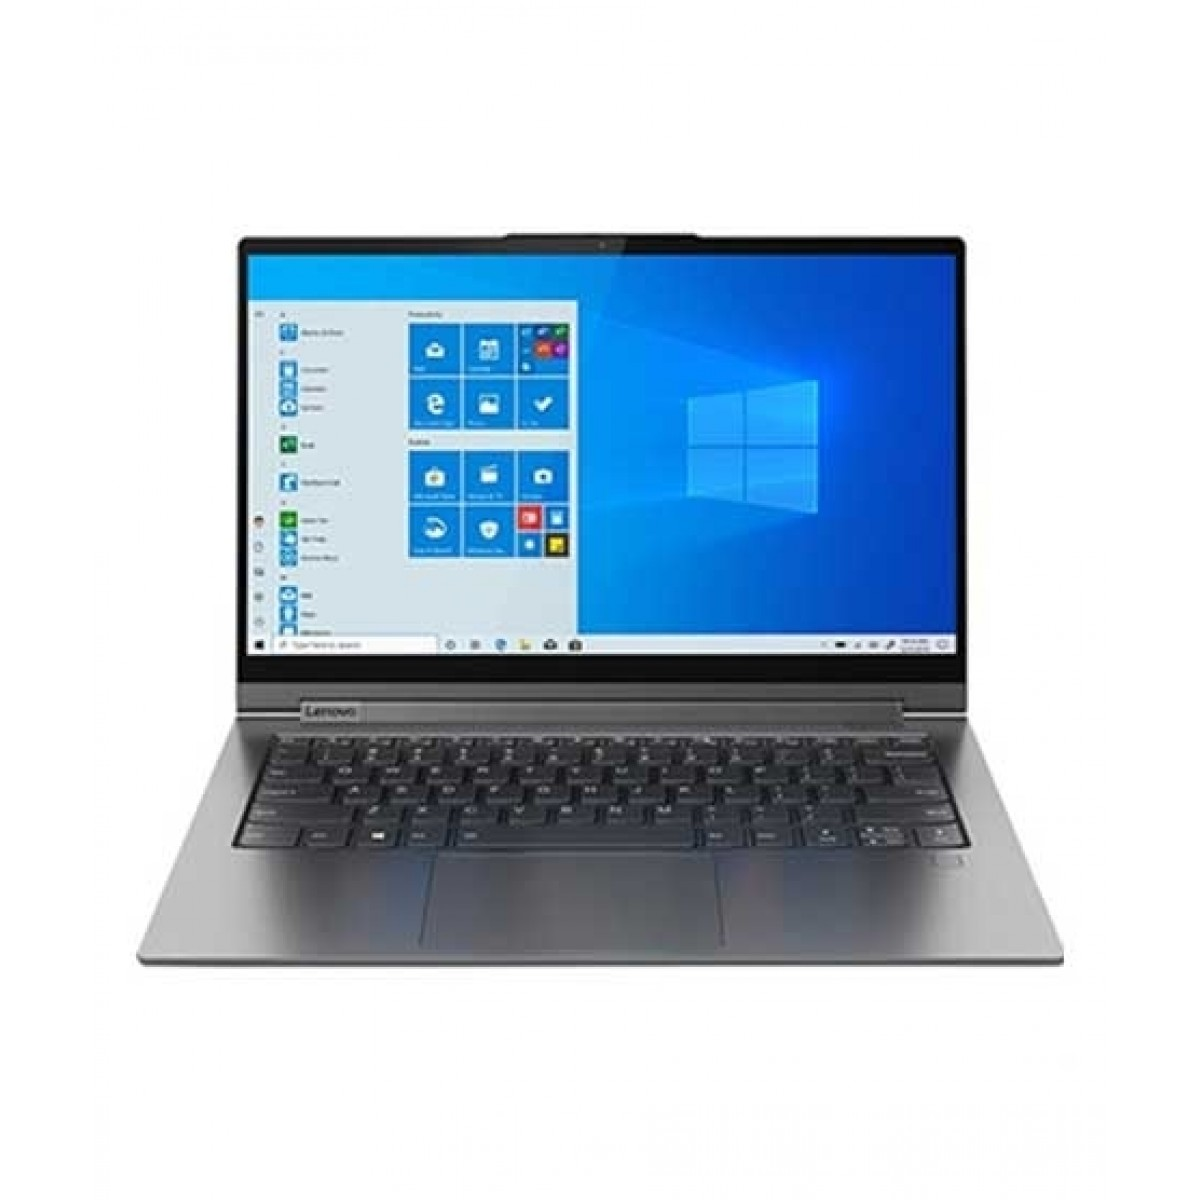 """Lenovo Yoga C940 14"""" Core i7 10th Gen 12GB 512GB Touch Laptop - Without Warranty"""